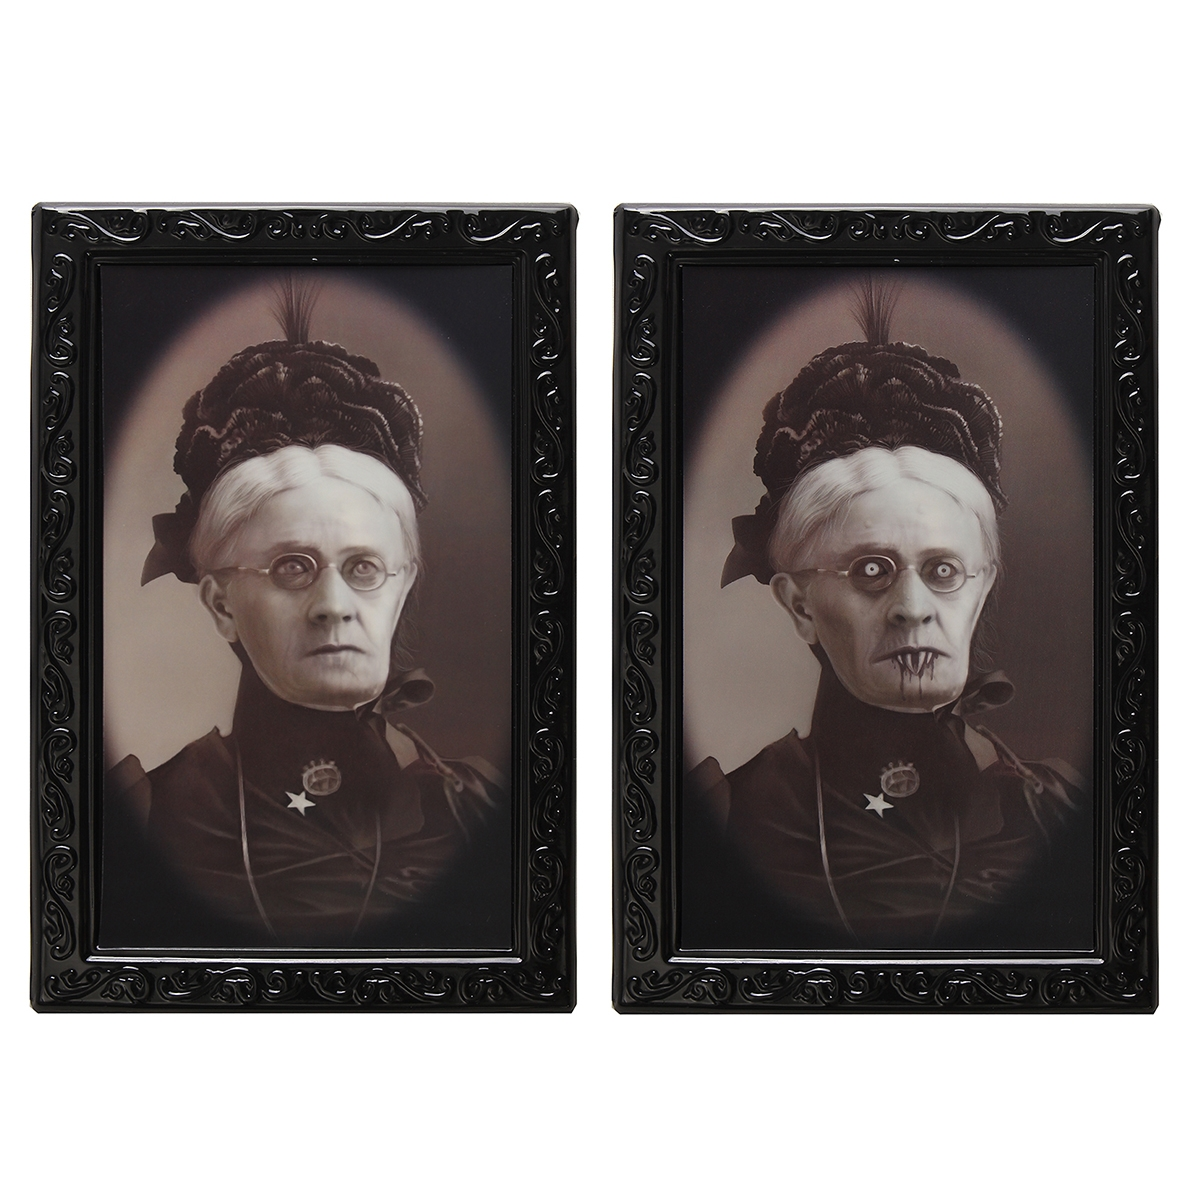 Hallowmas Lenticular 3D Changing Face Horror Portrait Haunted Spooky Decorations